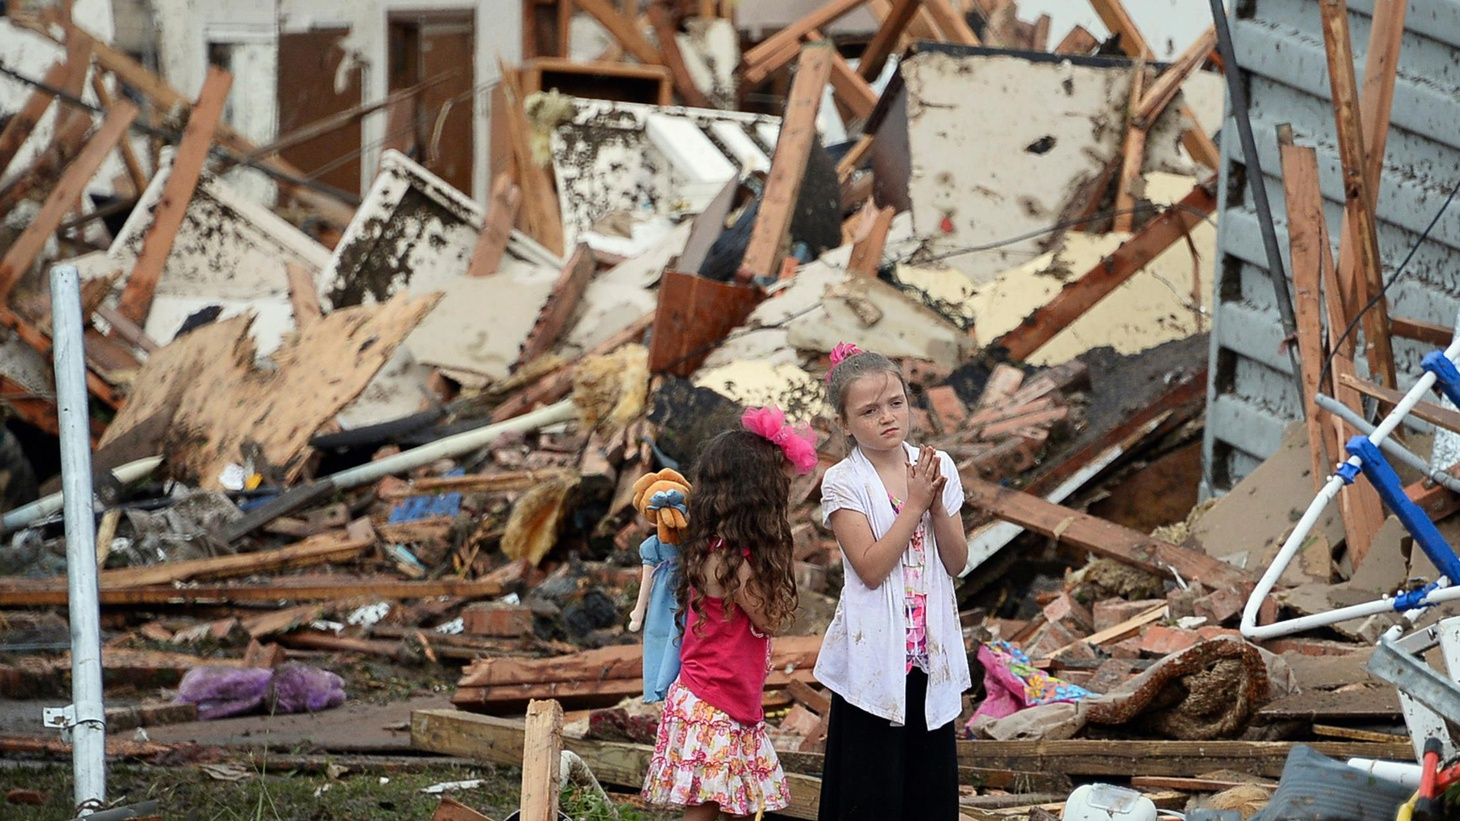 The Director of FEMA and the Secretary of Homeland Security are in Moore, Oklahoma after Monday's deadly tornado. We hear about rescue, recovery, rebuilding and resilience.